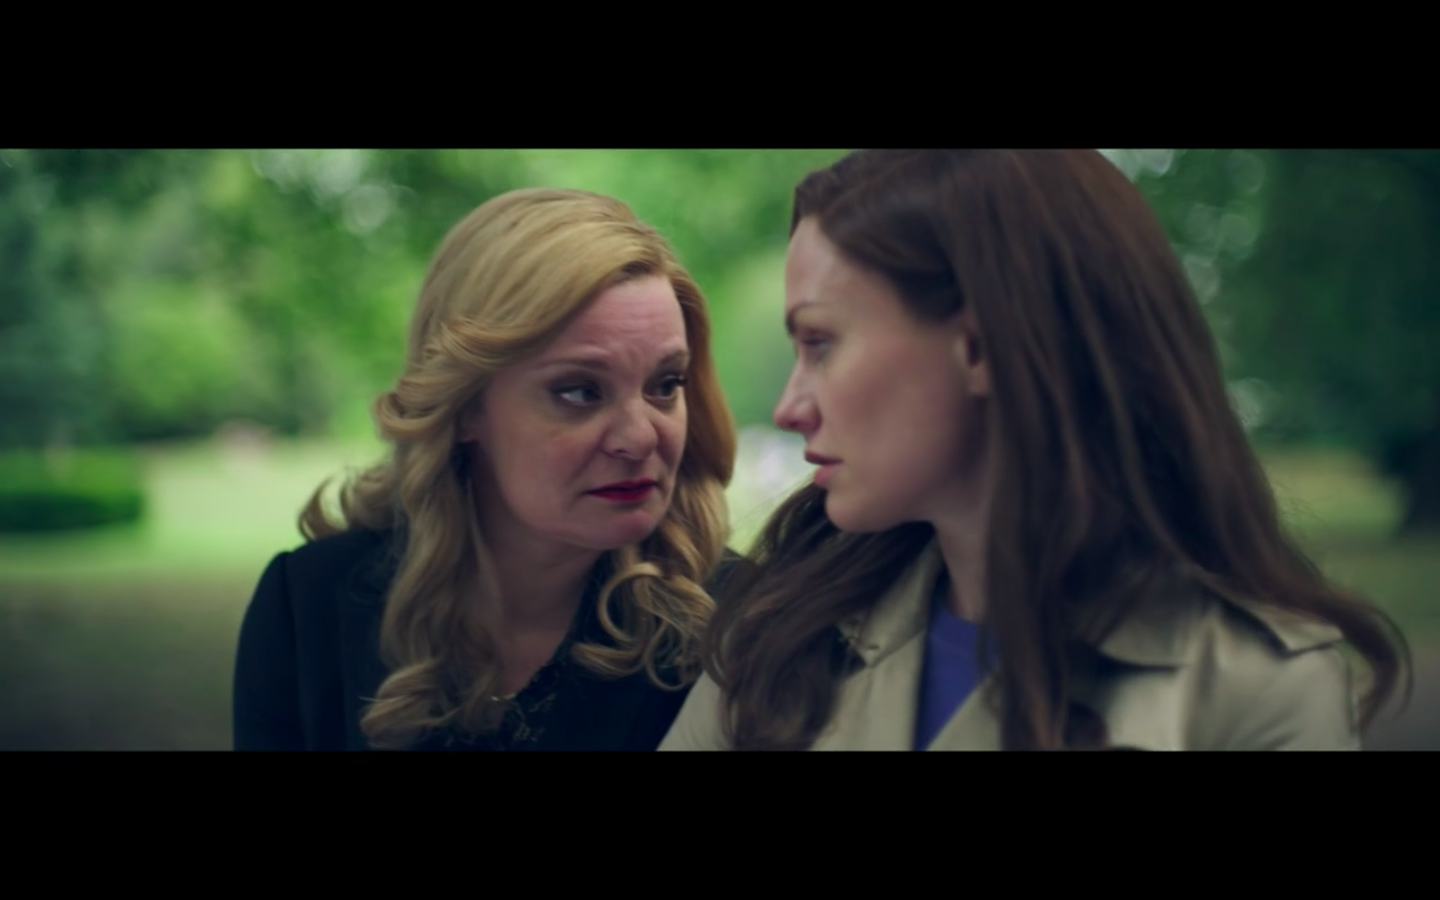 Martha Plimpton as Robyn's mother. She has long blonde hair and Robyn has long dark hair. They are both wearing trench coats as they walk through a park. They are looking at each other.